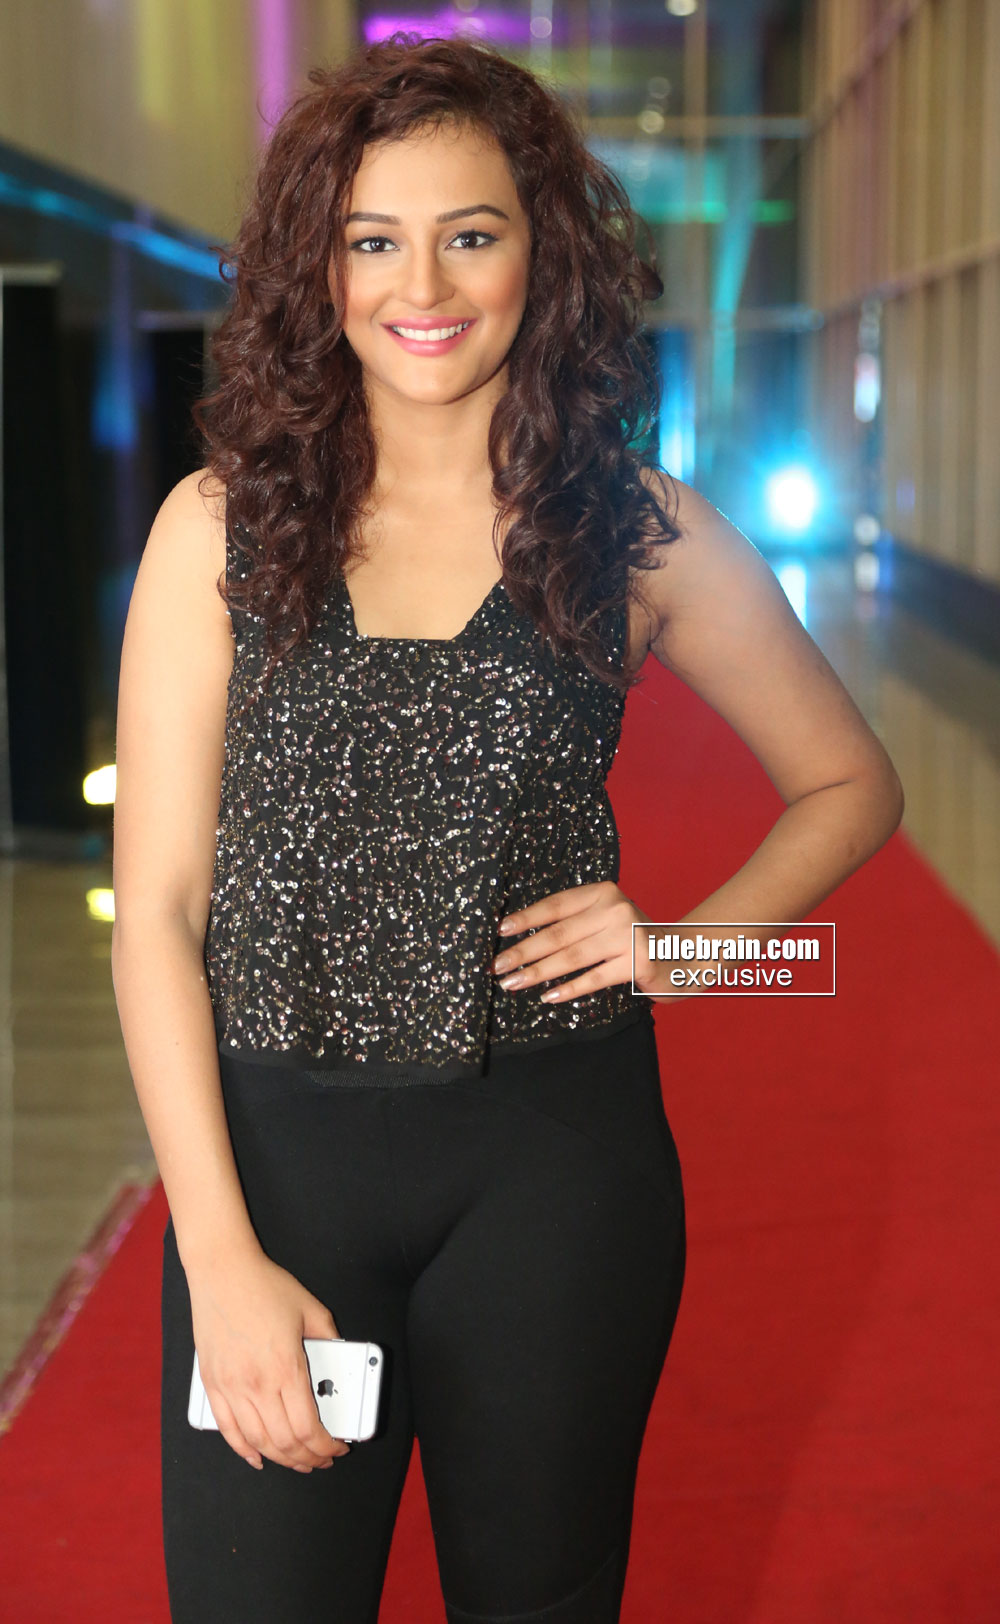 Seerat Kapoor shows her V shape pussy in tight Pants - Hot